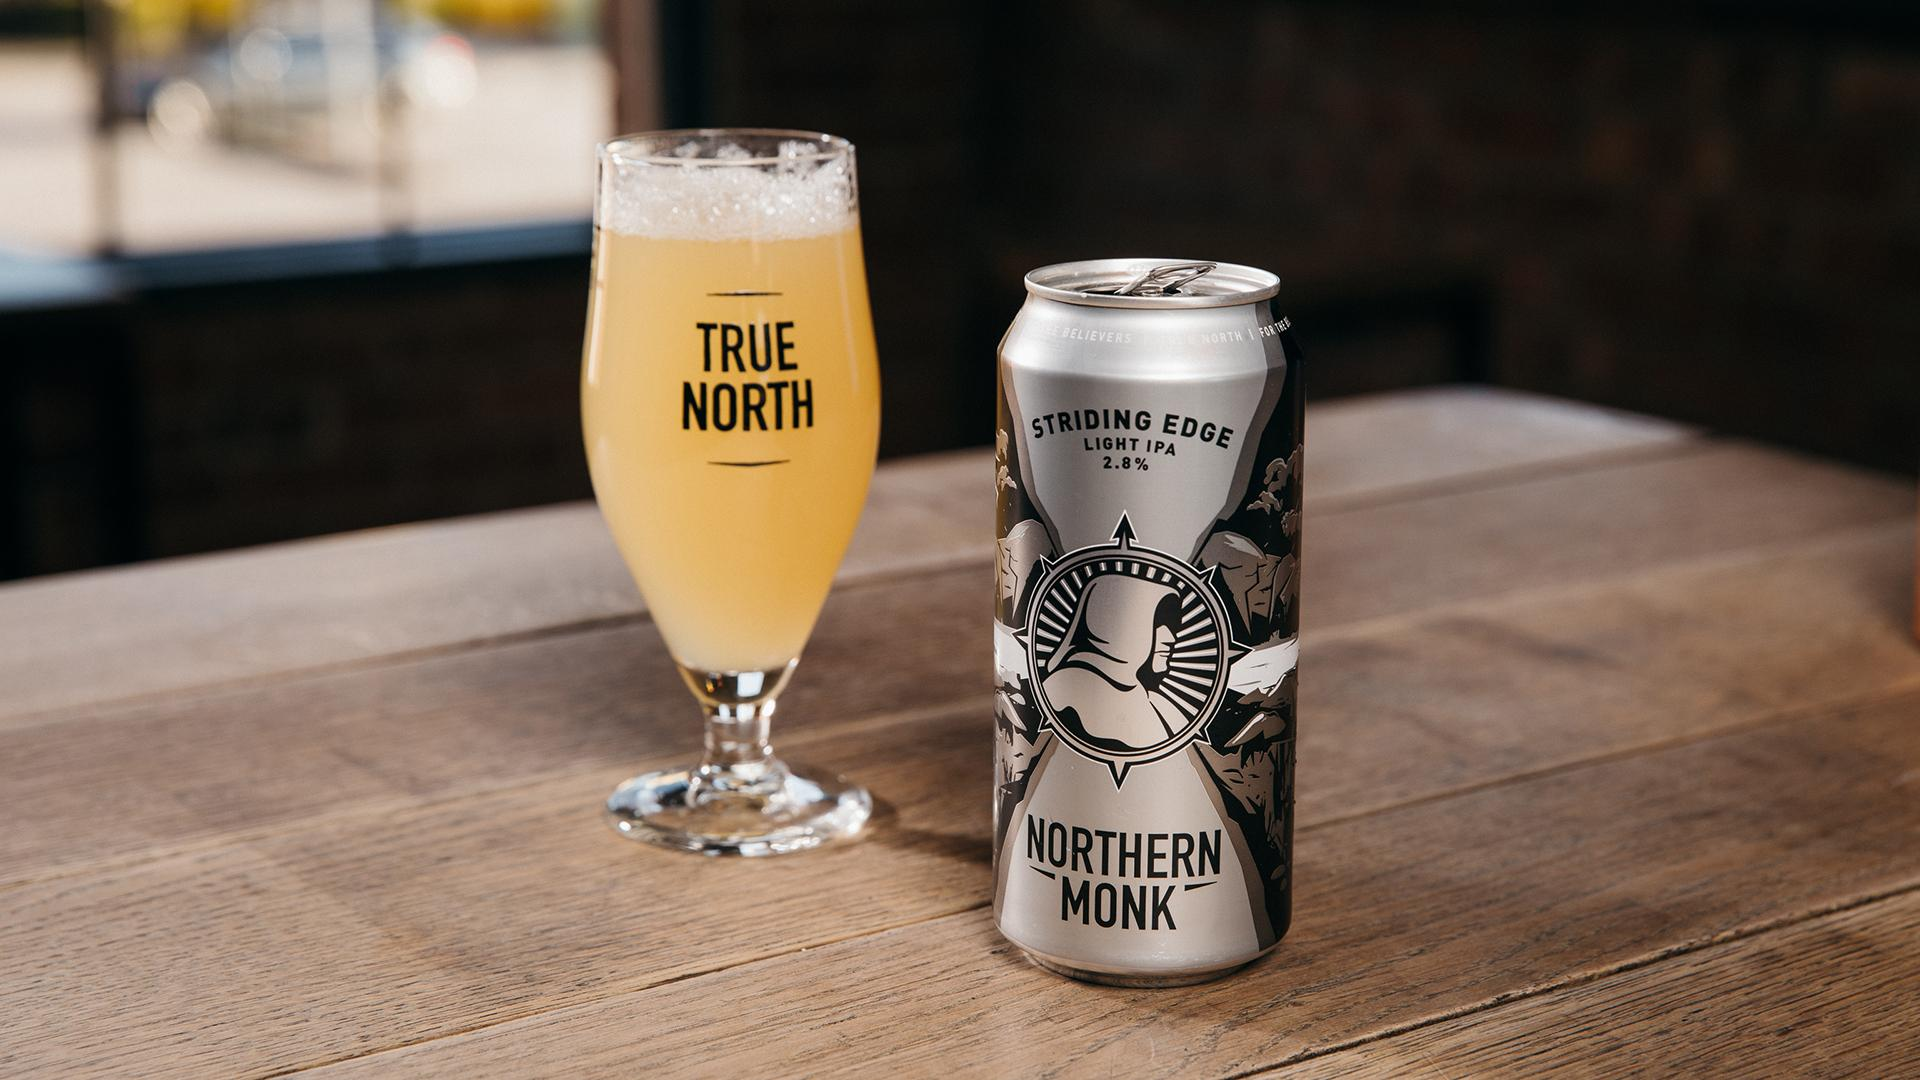 Non Alcoholic Beers London – Northern Monk's Striding Edge Light IPA – 2.8%